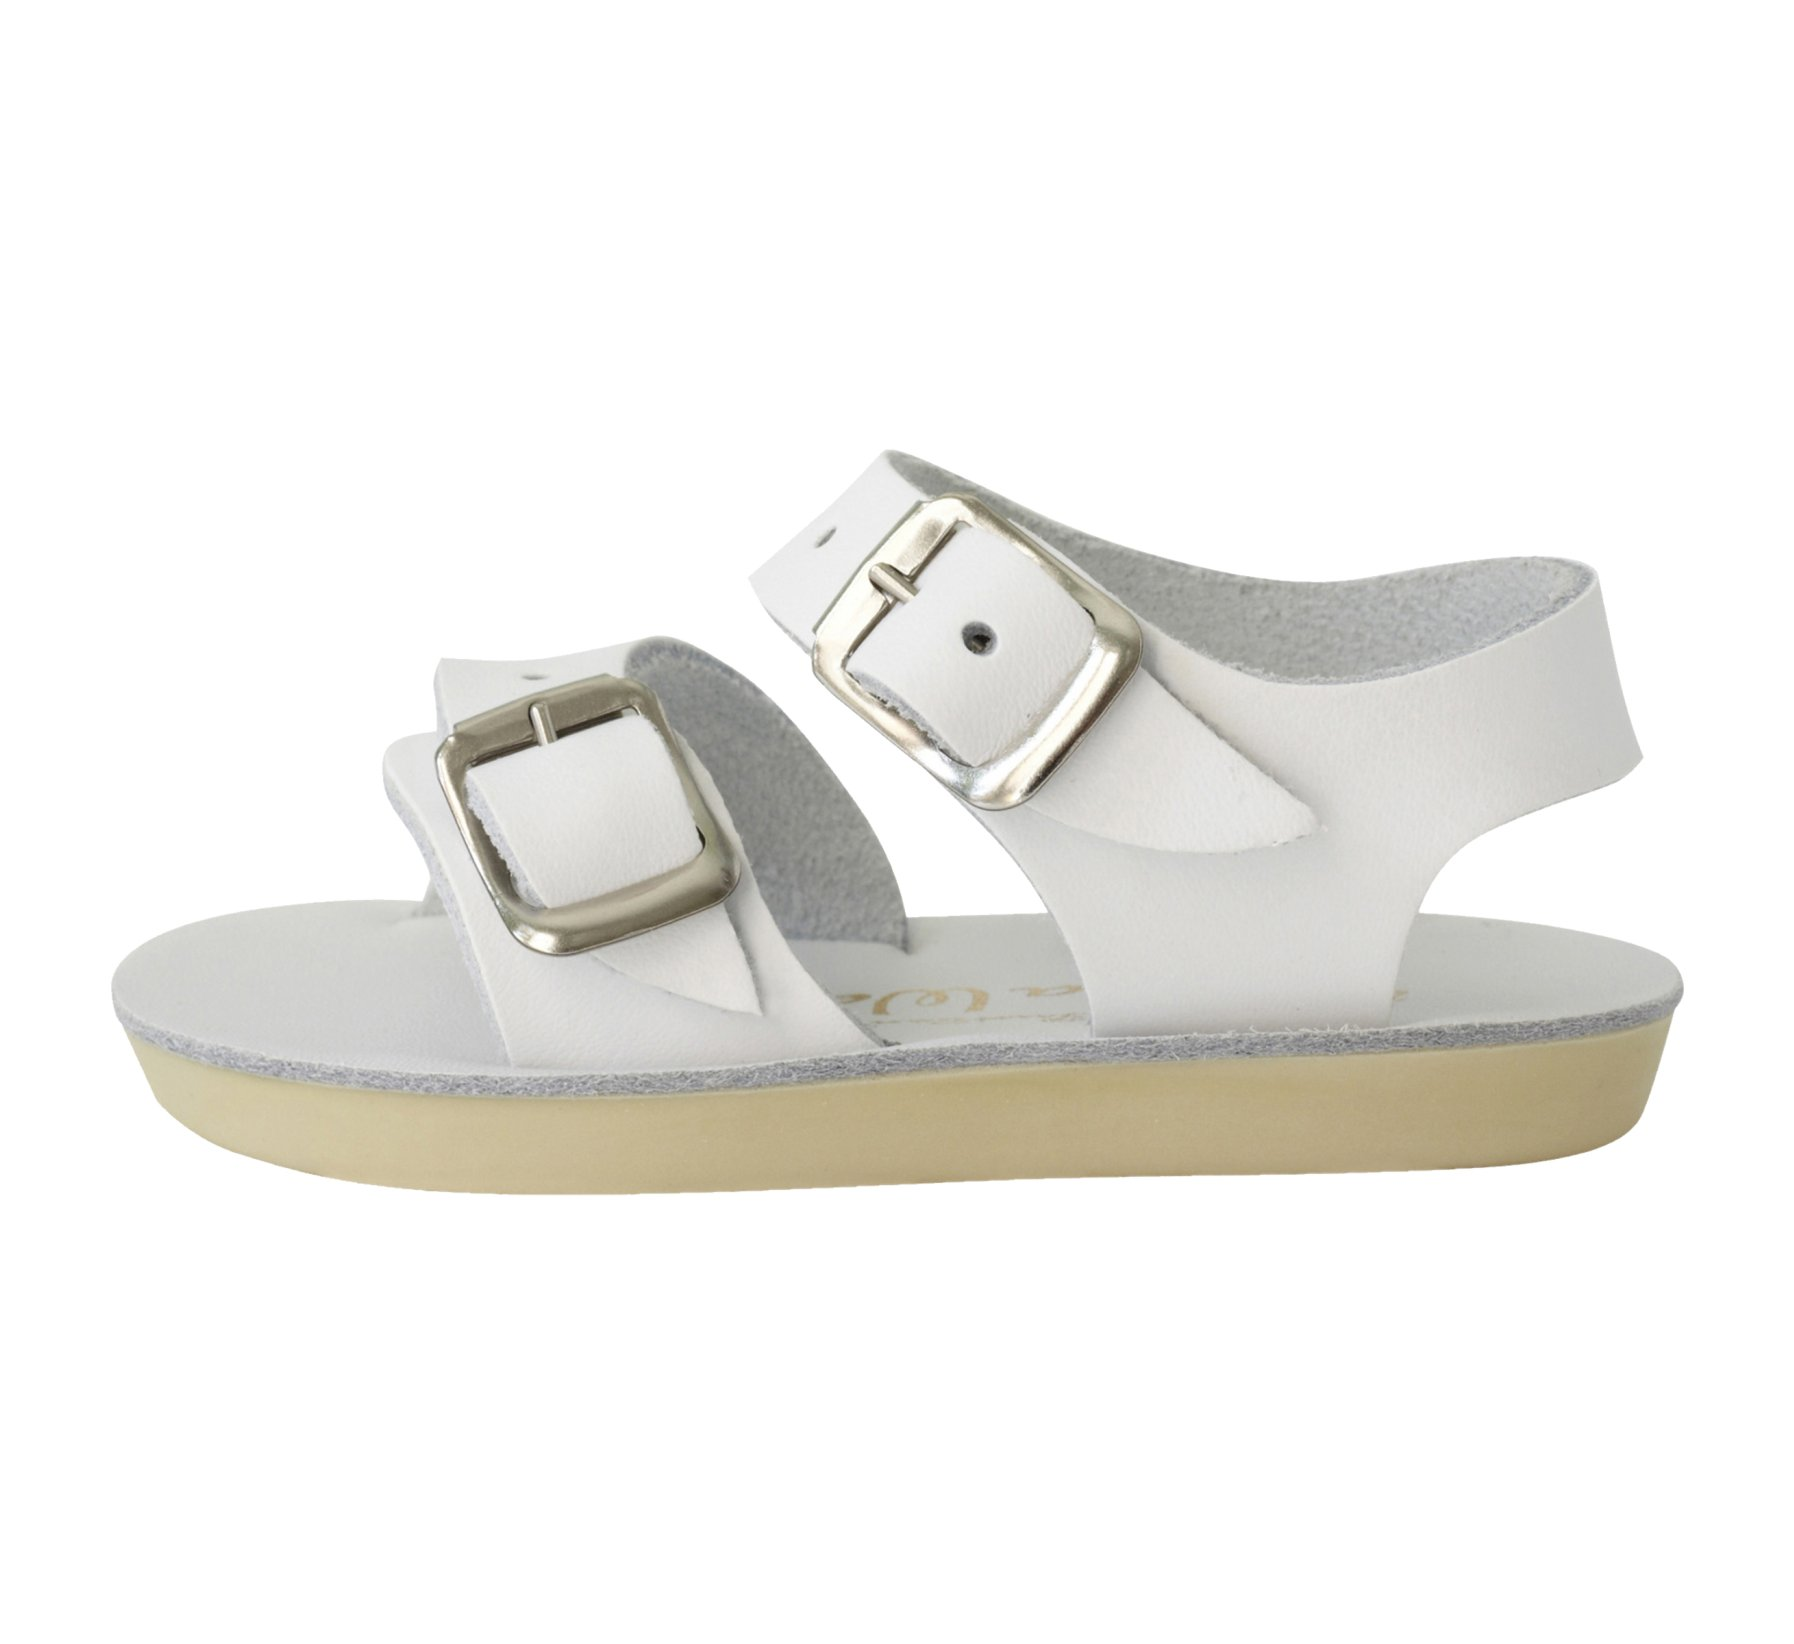 Seawee White - Salt Water Sandals